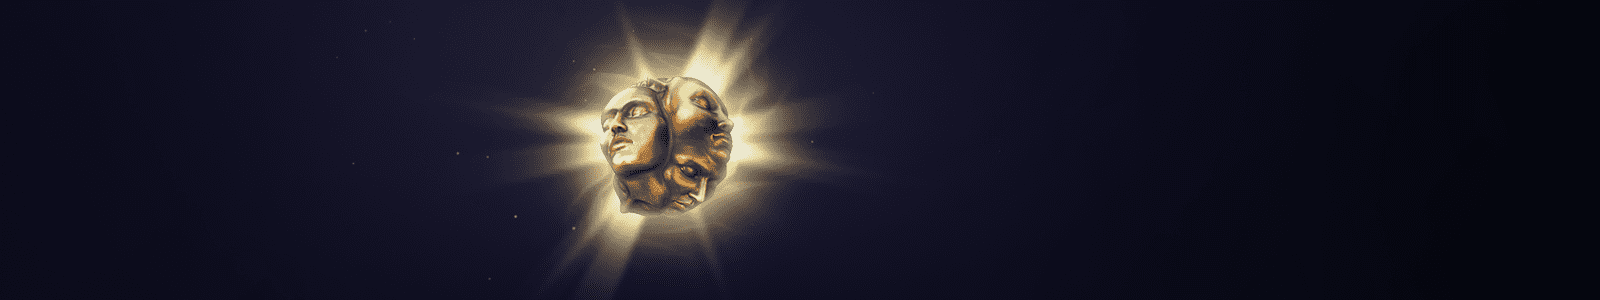 Exalted Orb